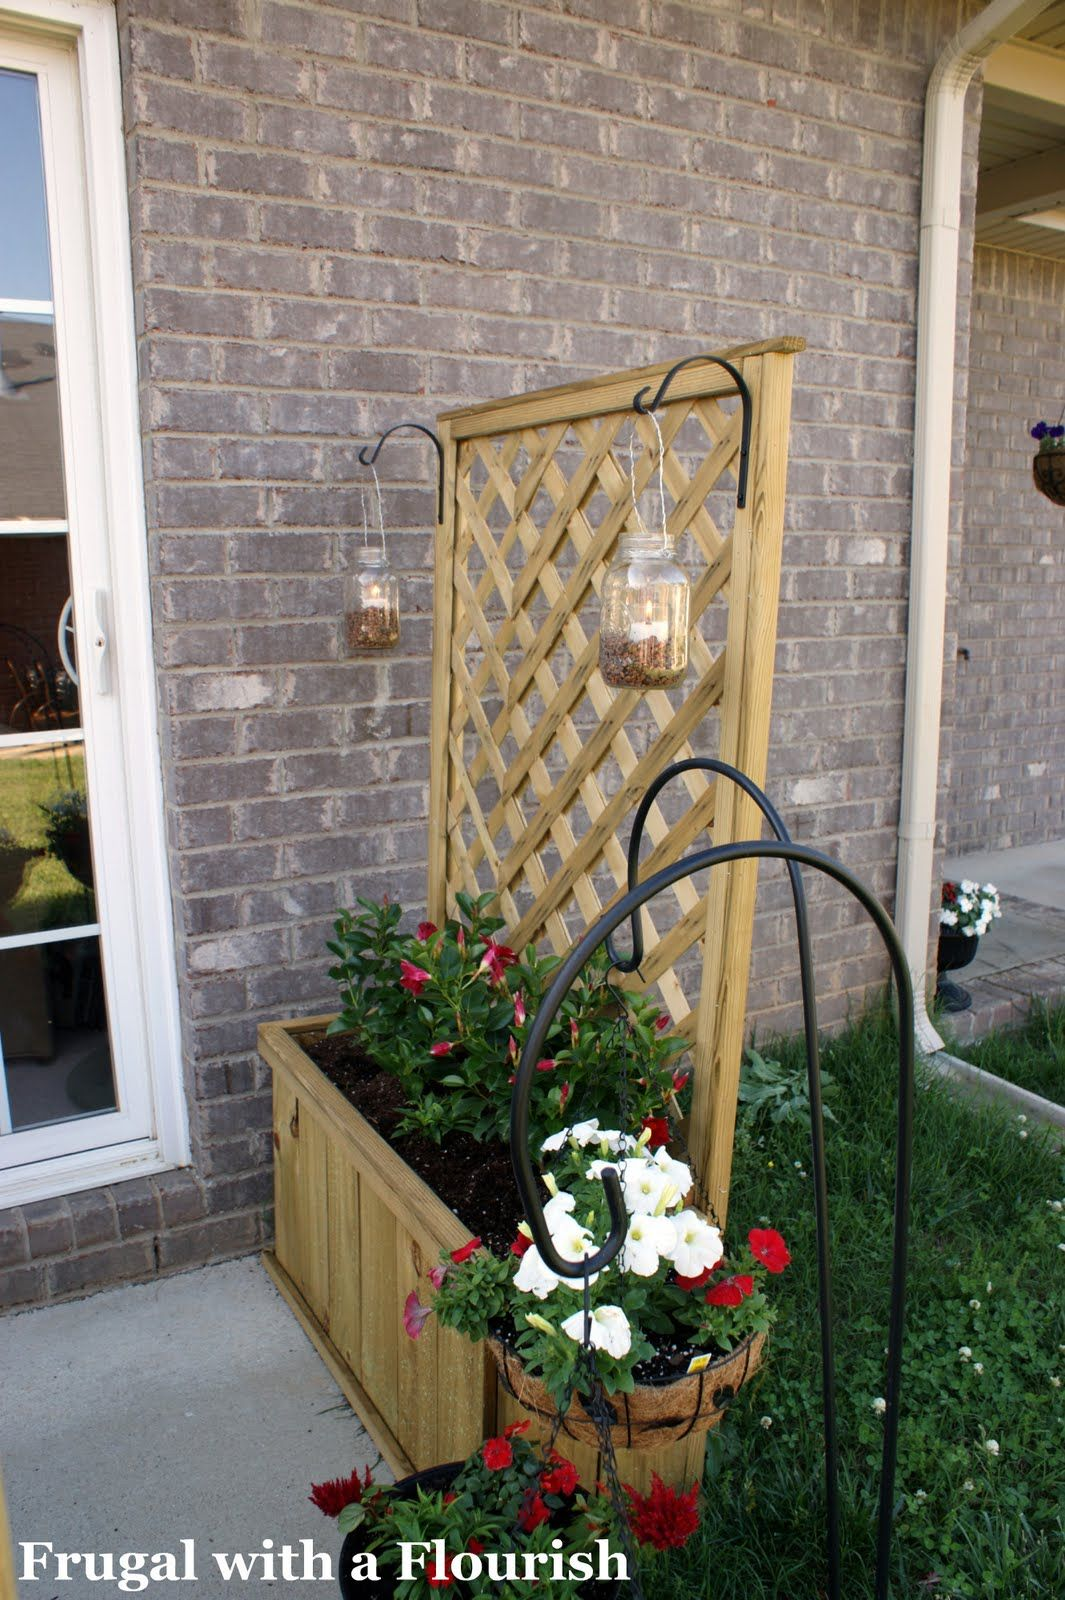 Creating an Outdoor Oasis - Guest Post by Frugal with a Flourish